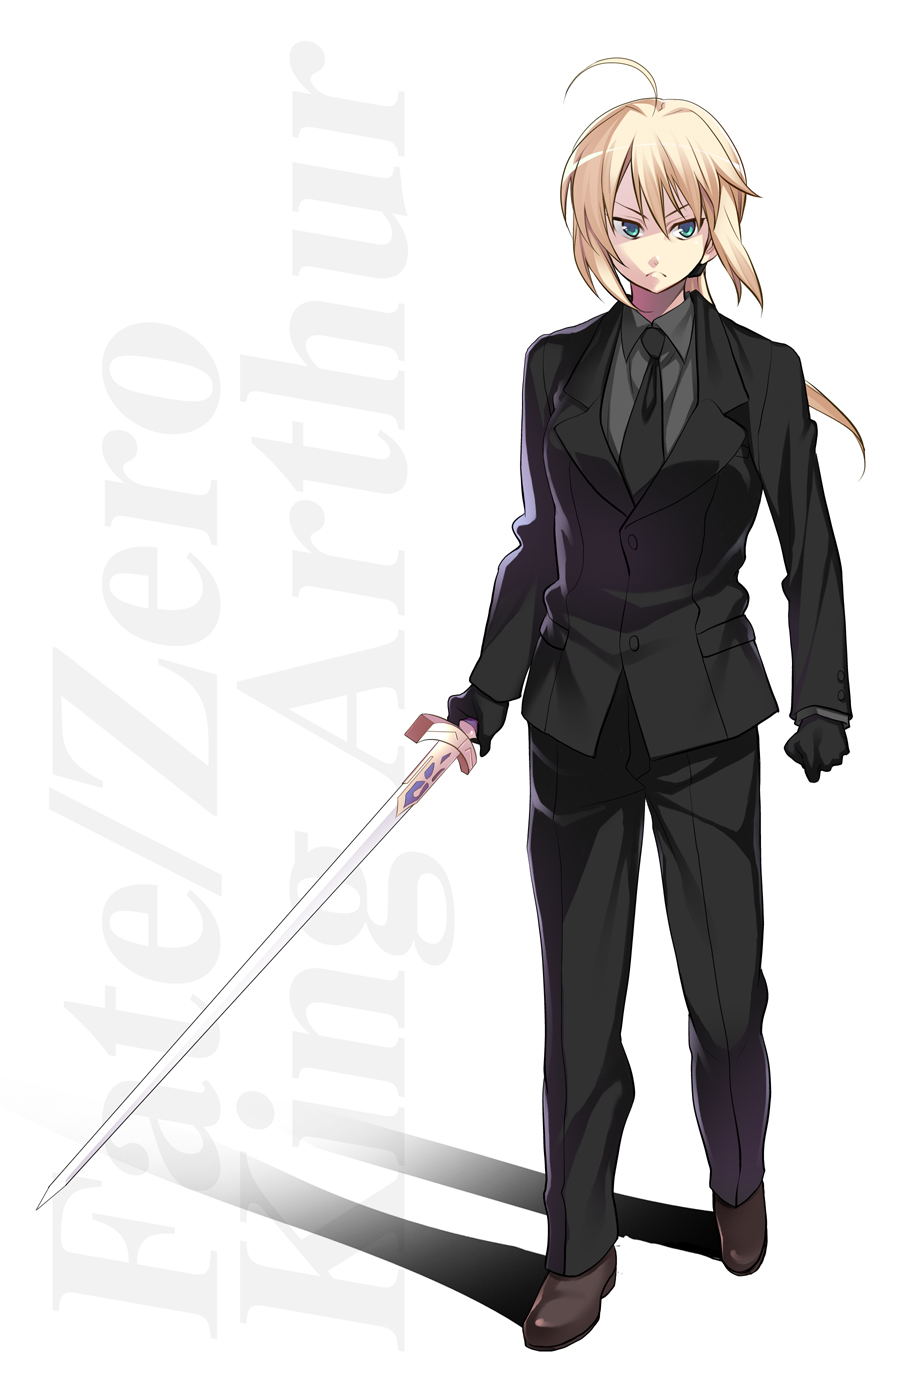 saber fatestay night suit page 11 zerochan anime